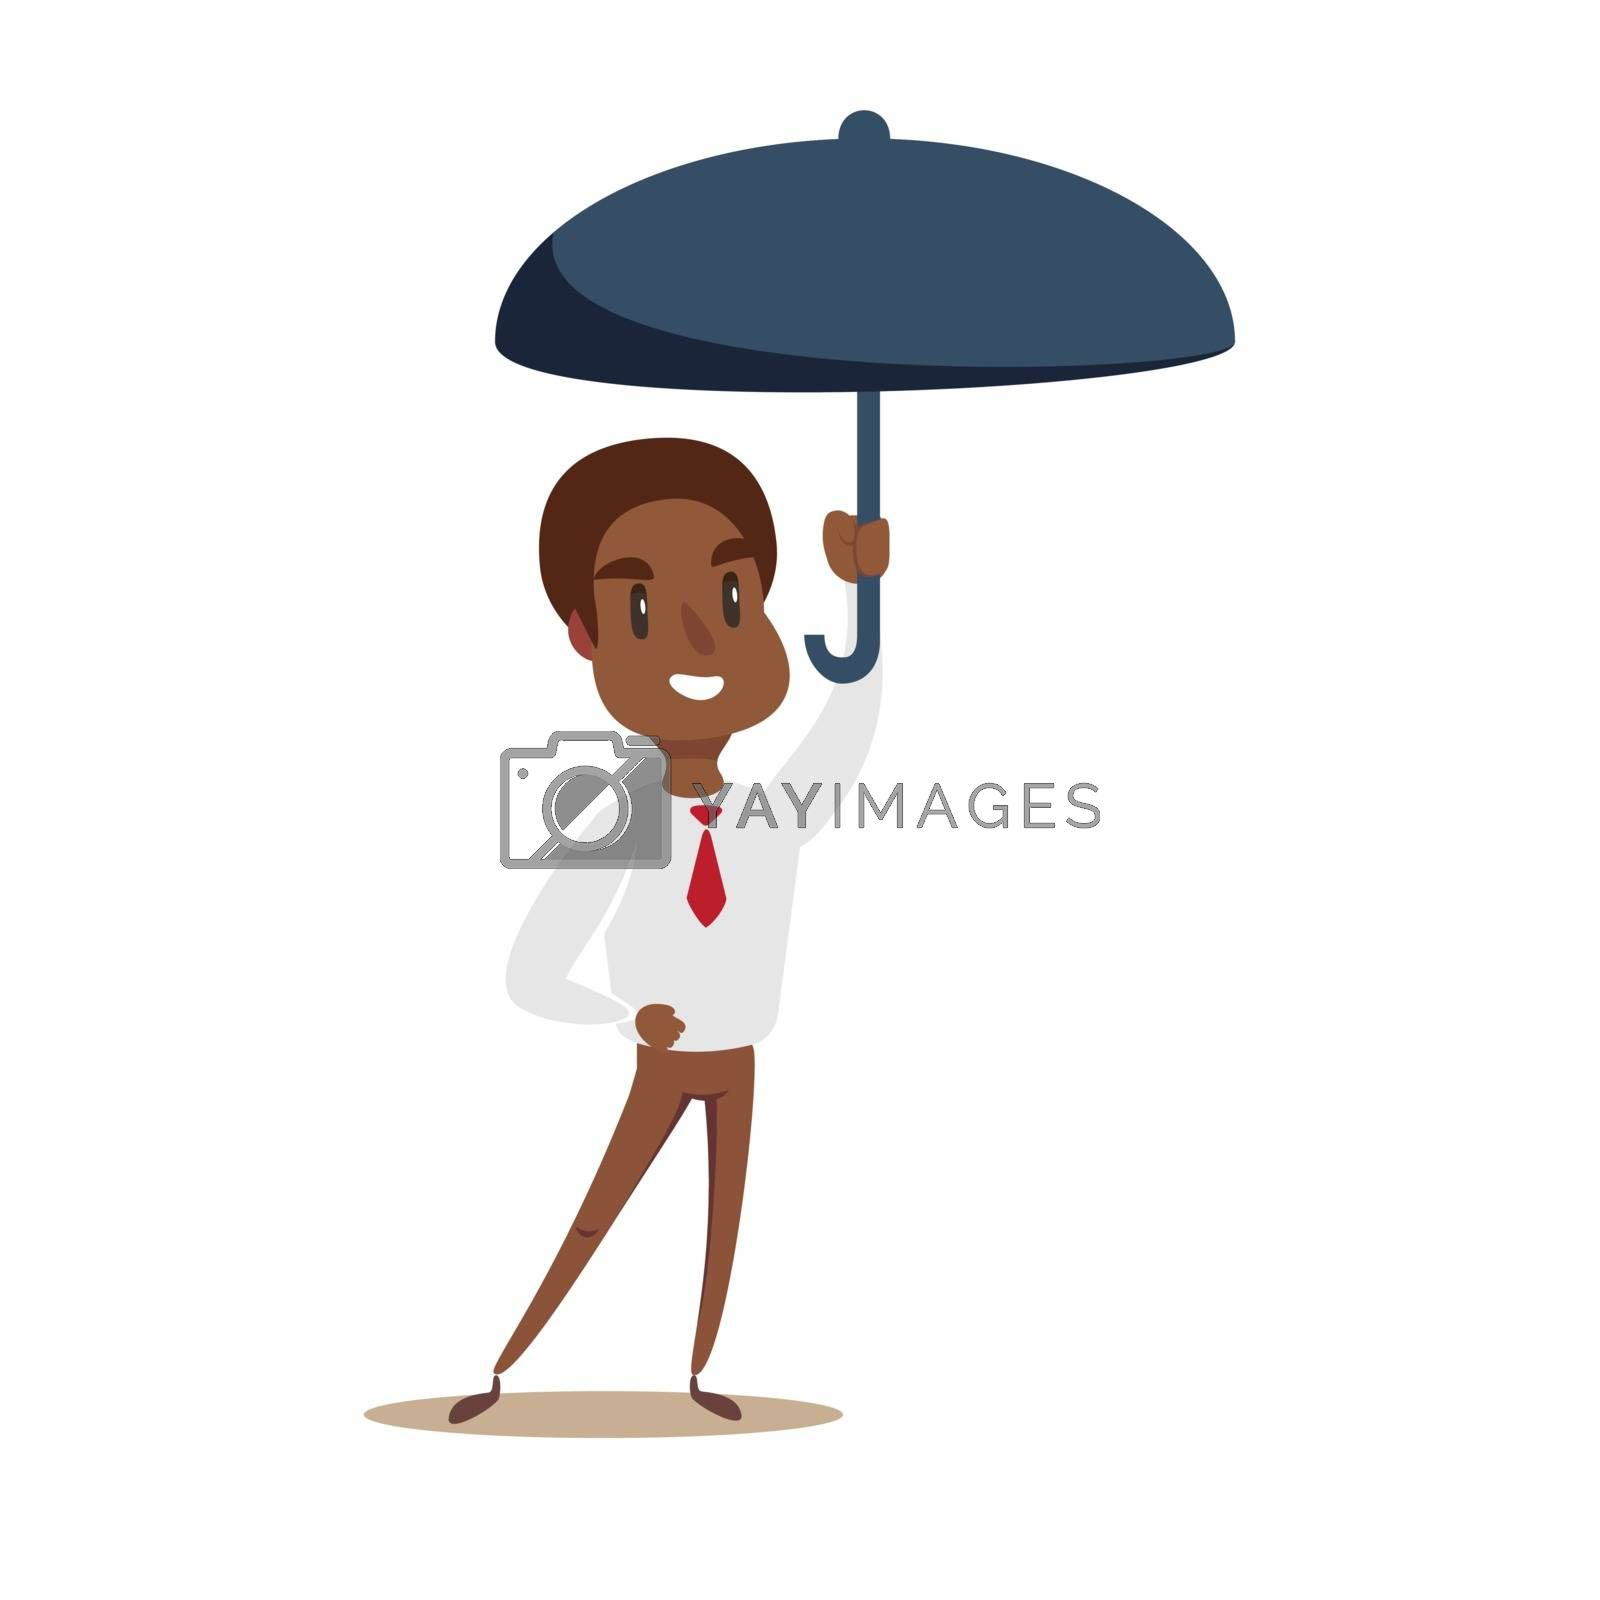 Business Man with an umbrella. Vector flat design illustration.